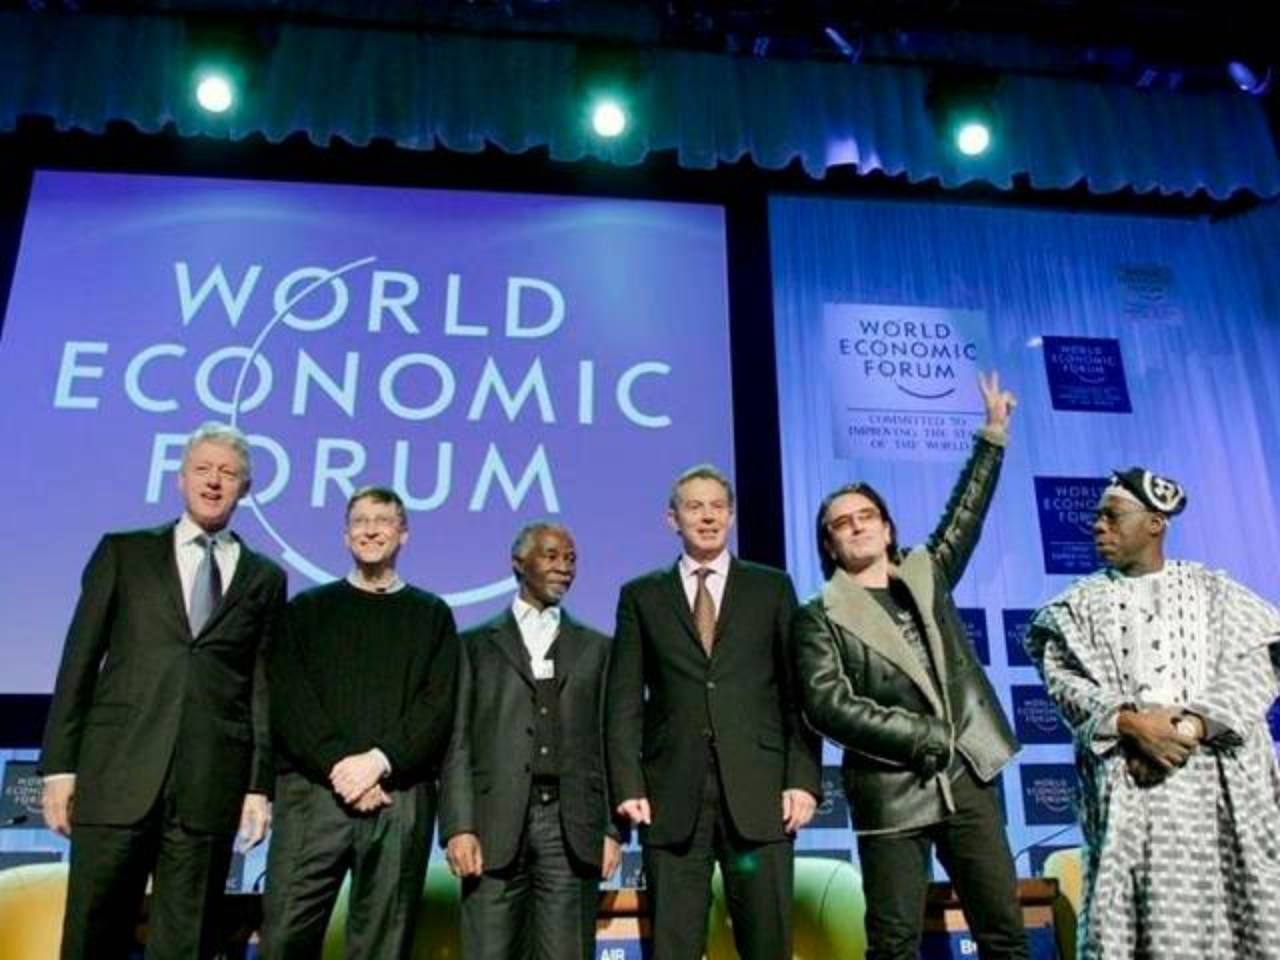 World Economic Forum 2010 | SENATUS